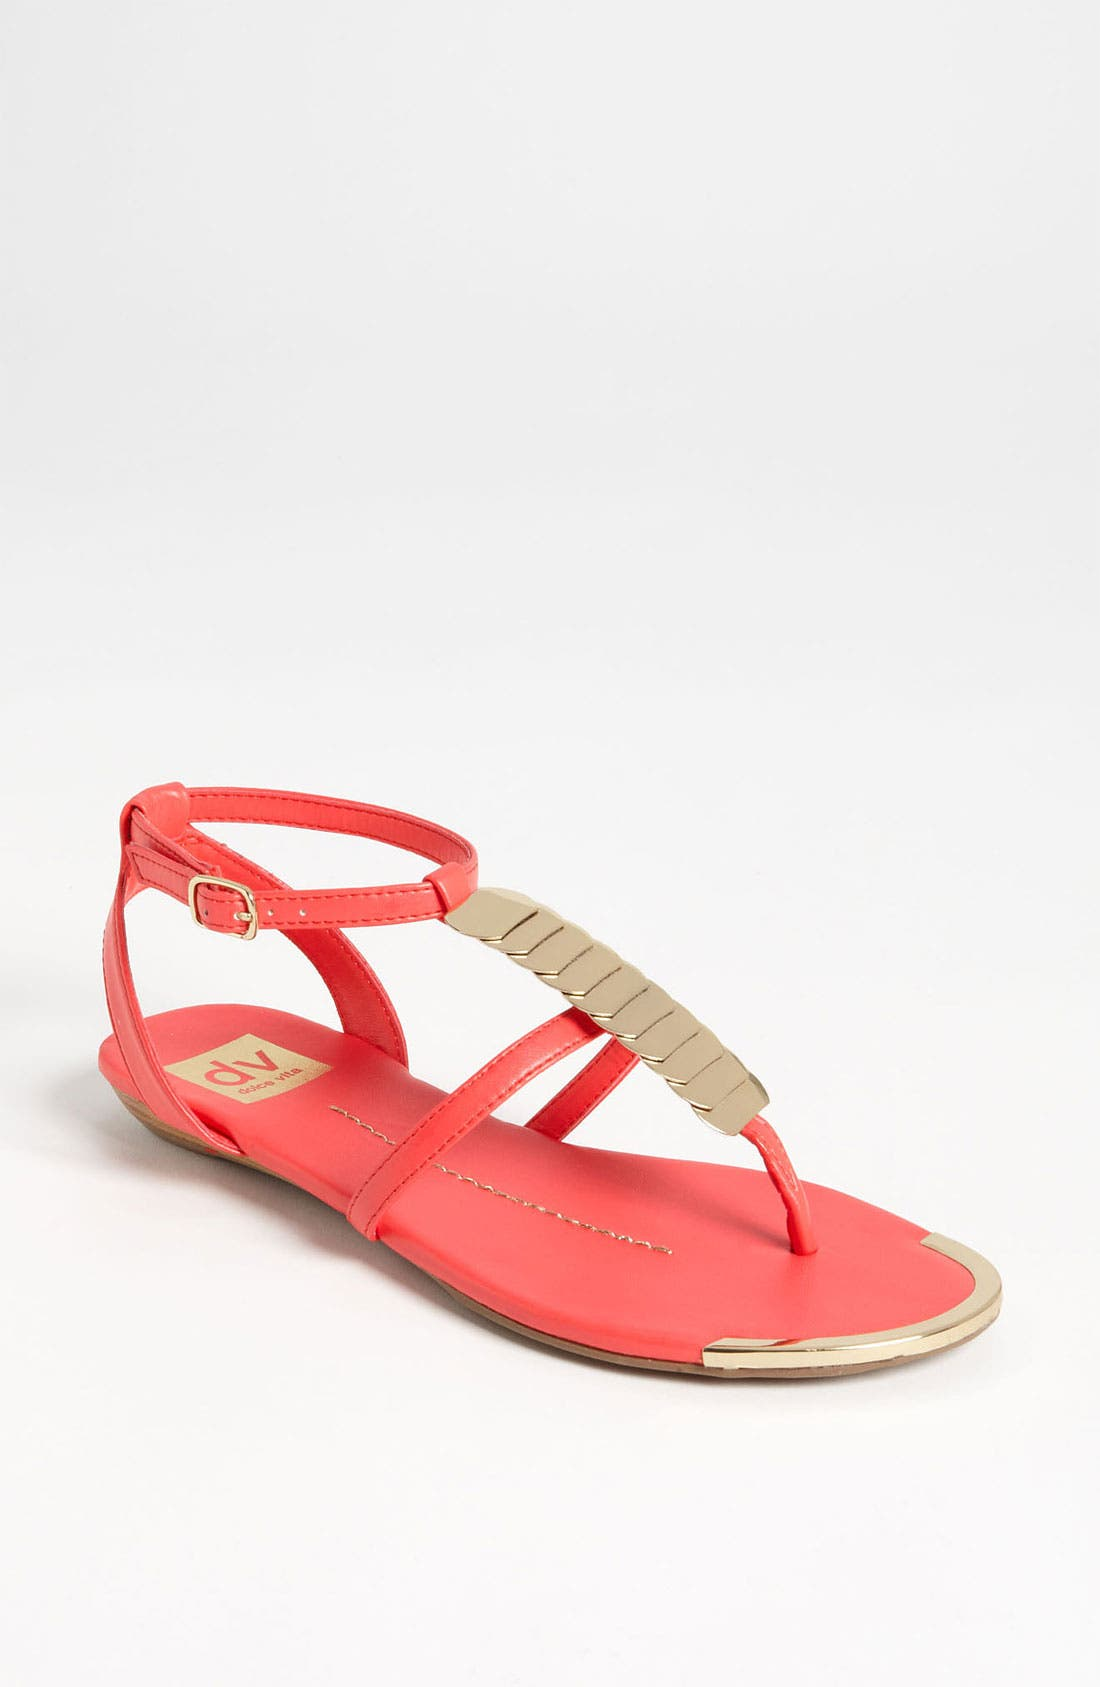 Alternate Image 1 Selected - DV by Dolce Vita 'Apex' Sandal (Online Only)